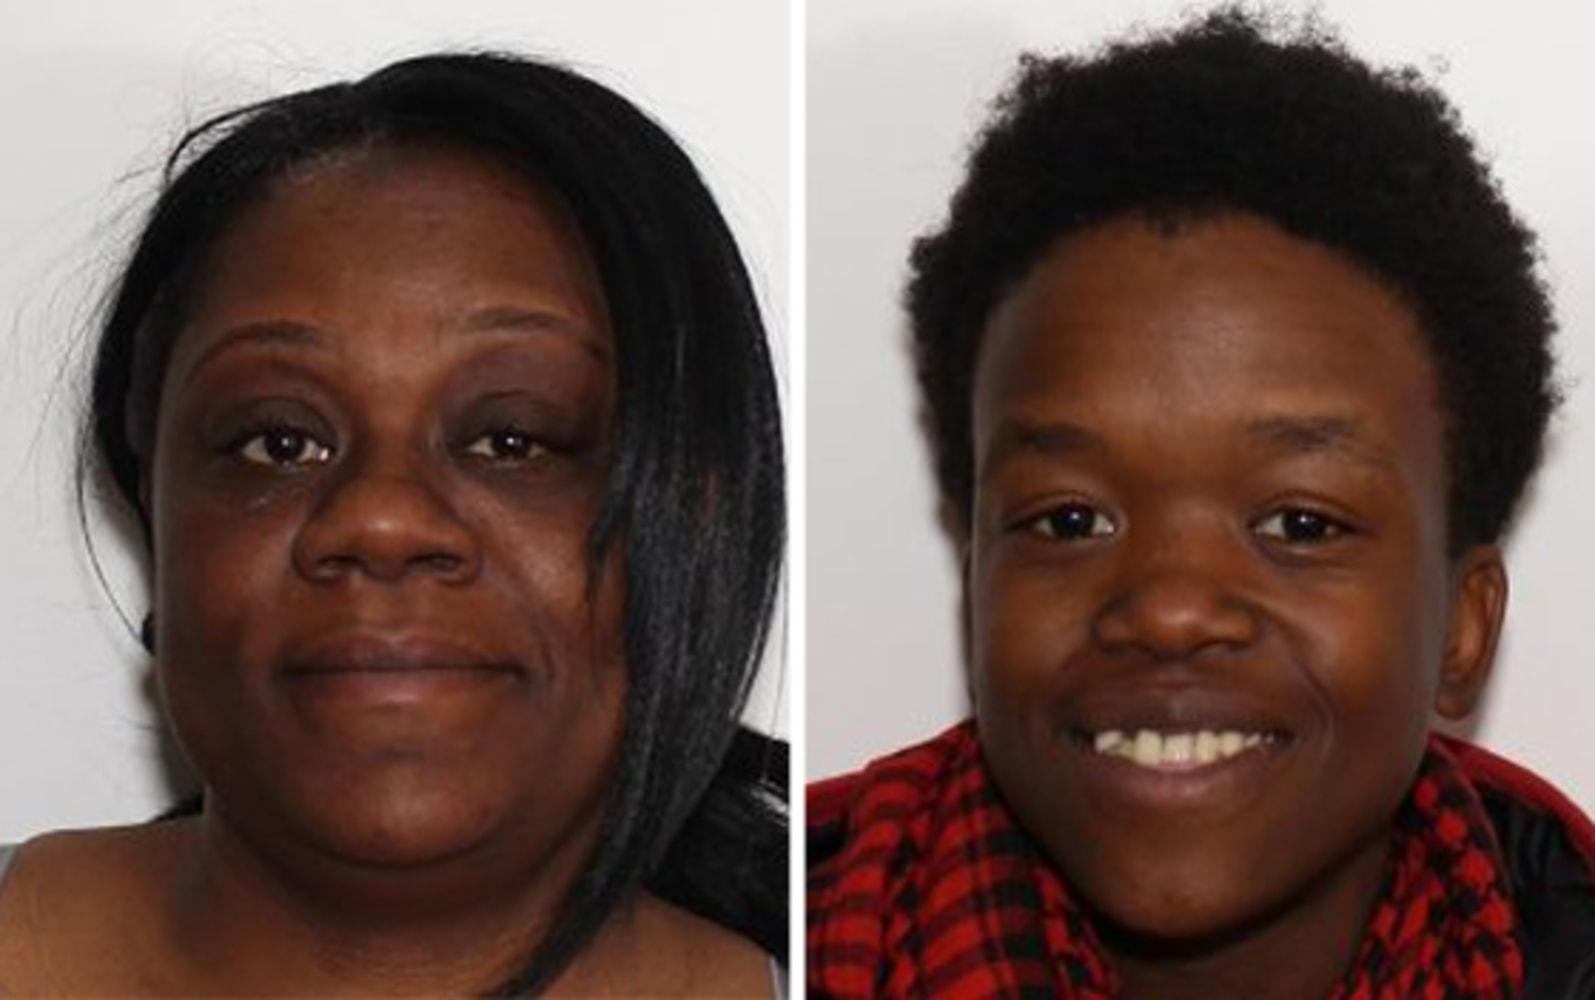 Alert: 2 arrested in killing of Troy family, arraignments Saturday